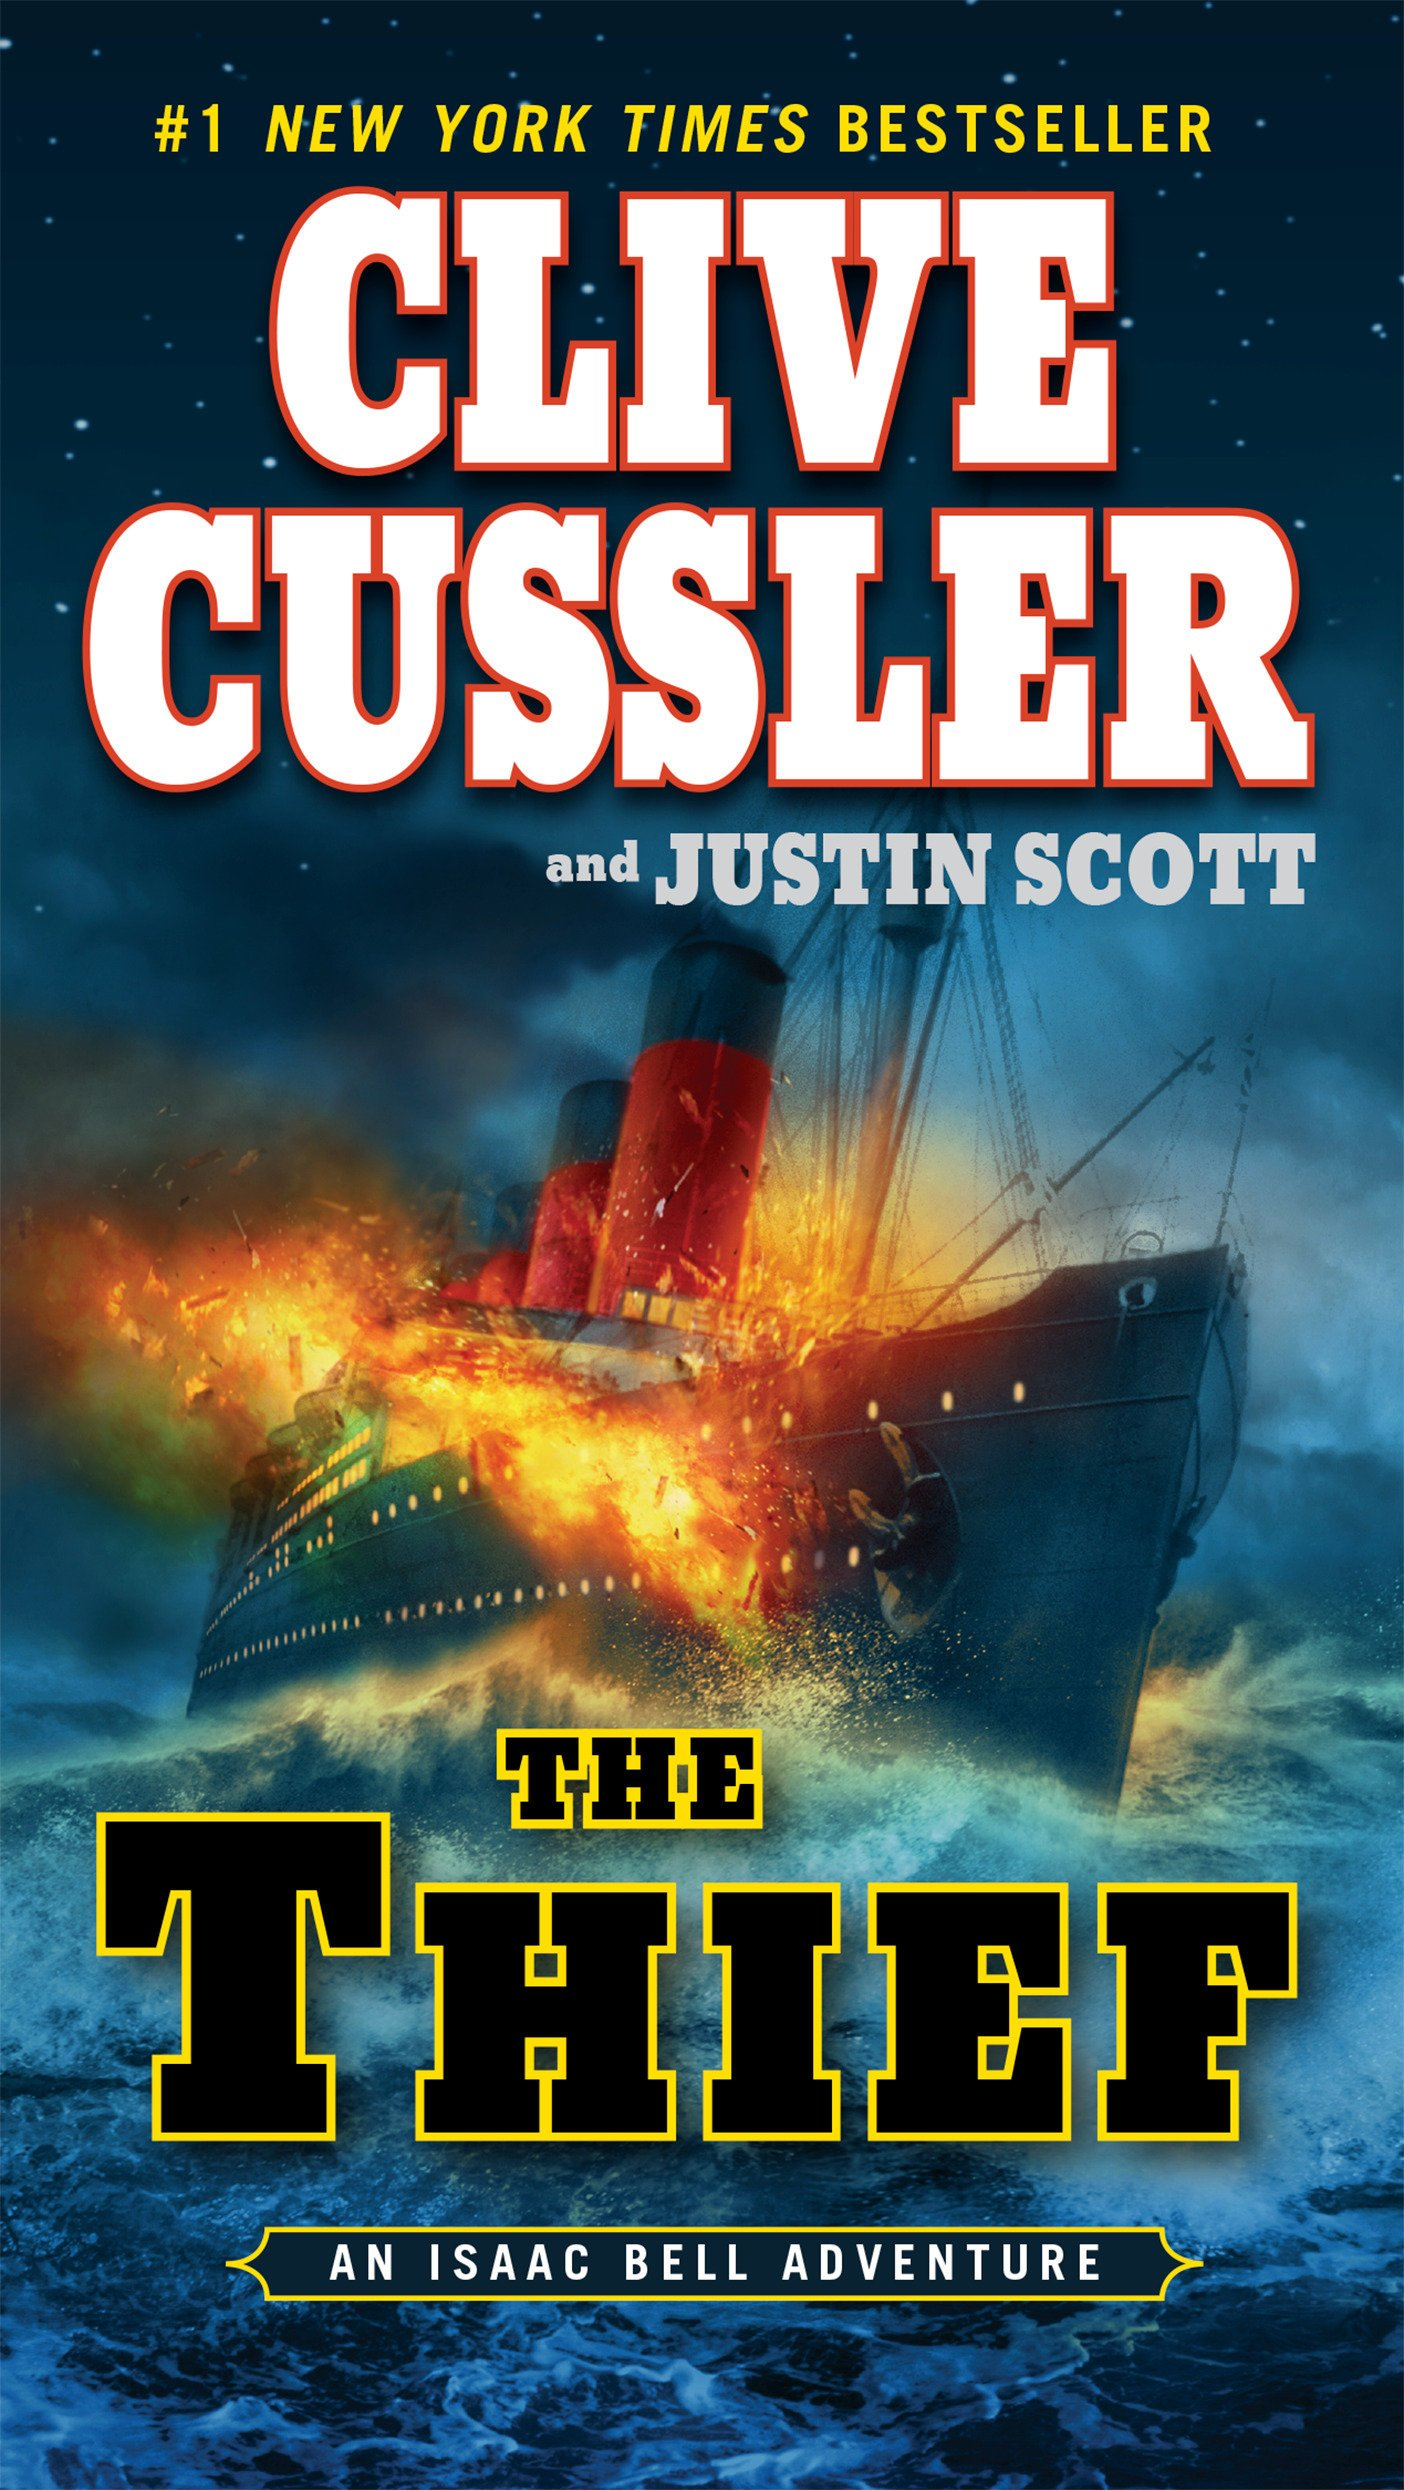 Amazon.com: The Thief (An Isaac Bell Adventure) (9780425259290): Clive  Cussler, Justin Scott: Books